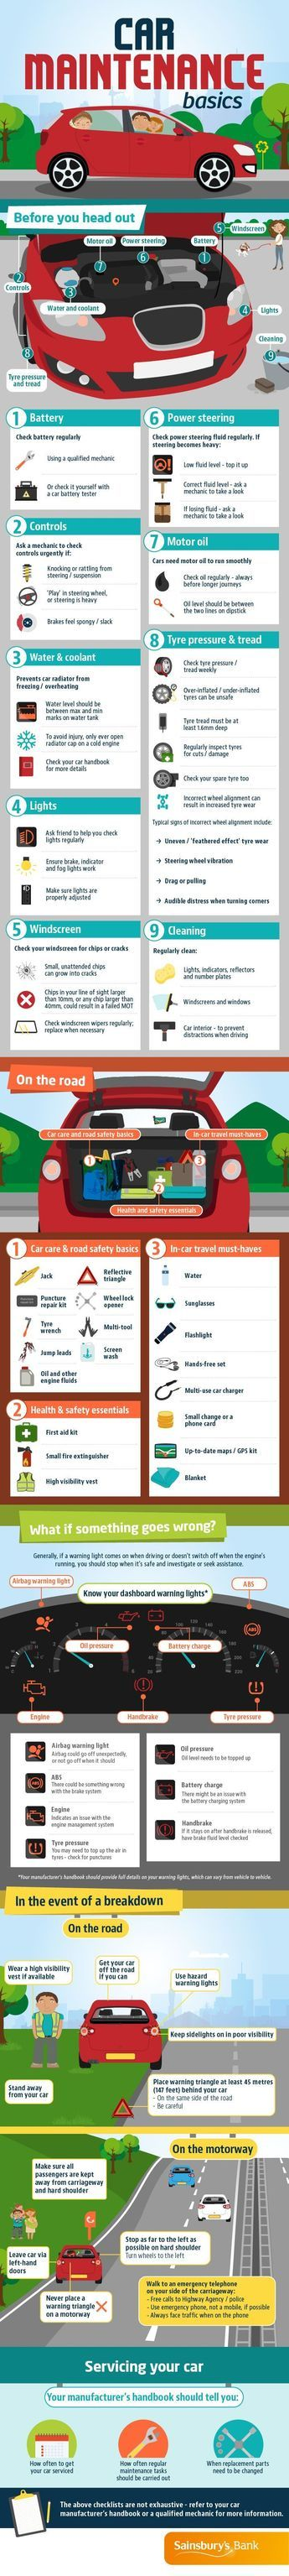 A Visual Guide to Car Maintenance infographic Car